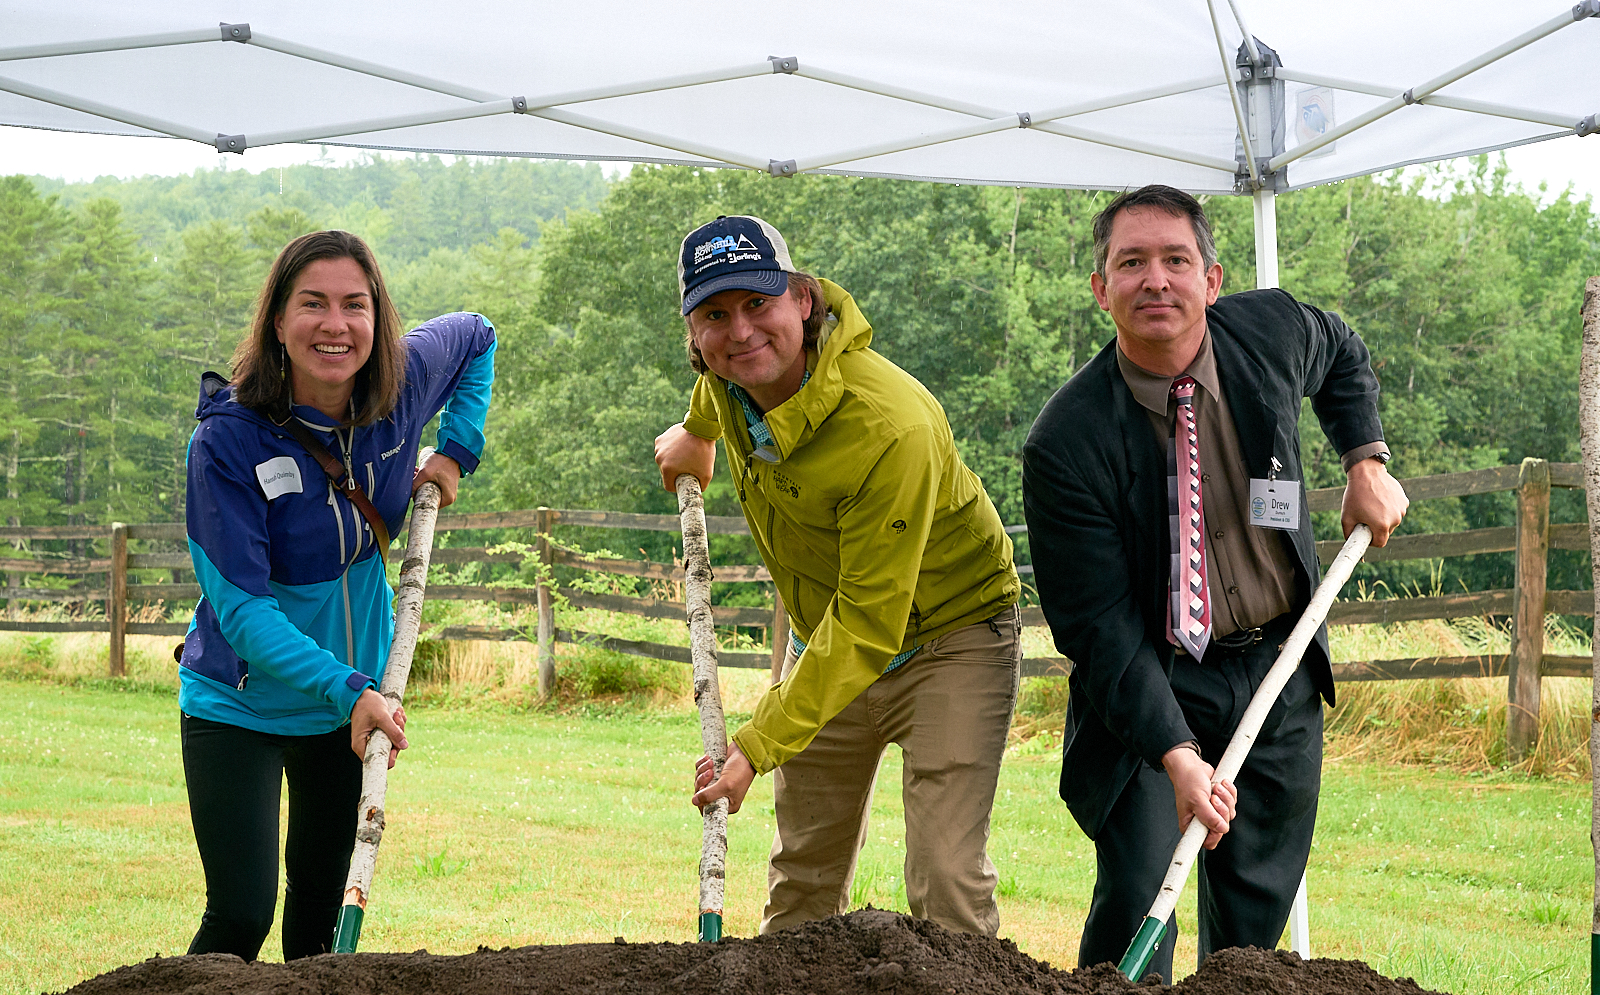 Hannah Quimby, Zak Klein, and Drew Dumsch (left to right) at The Ecology School's Groundbreaking Ceremony for River Bend Farm in Summer 2019.